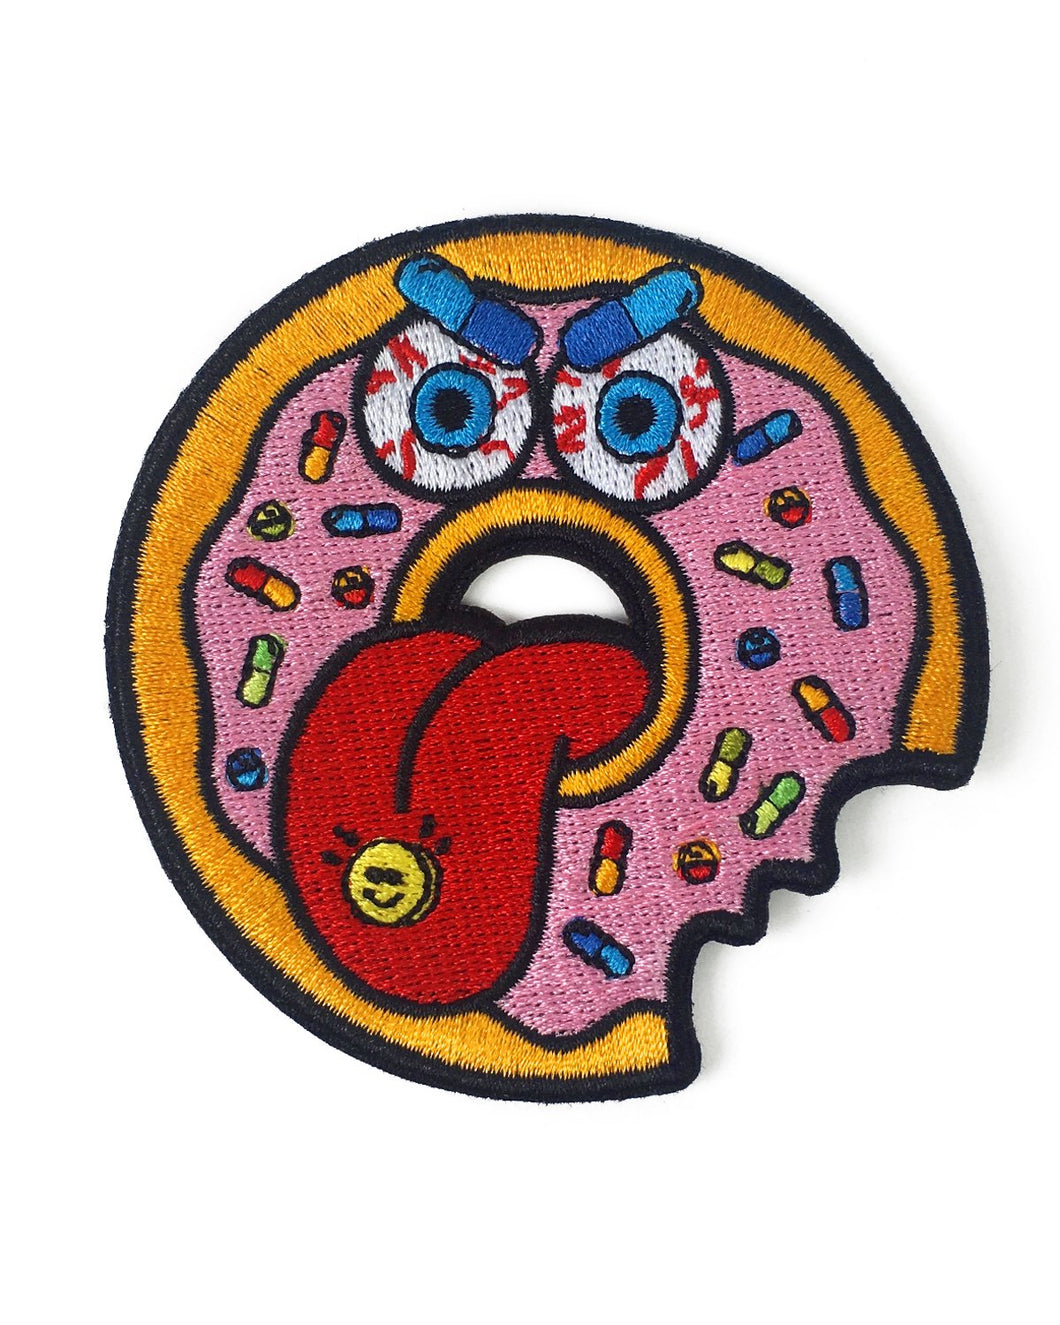 Donut Addiction Patch